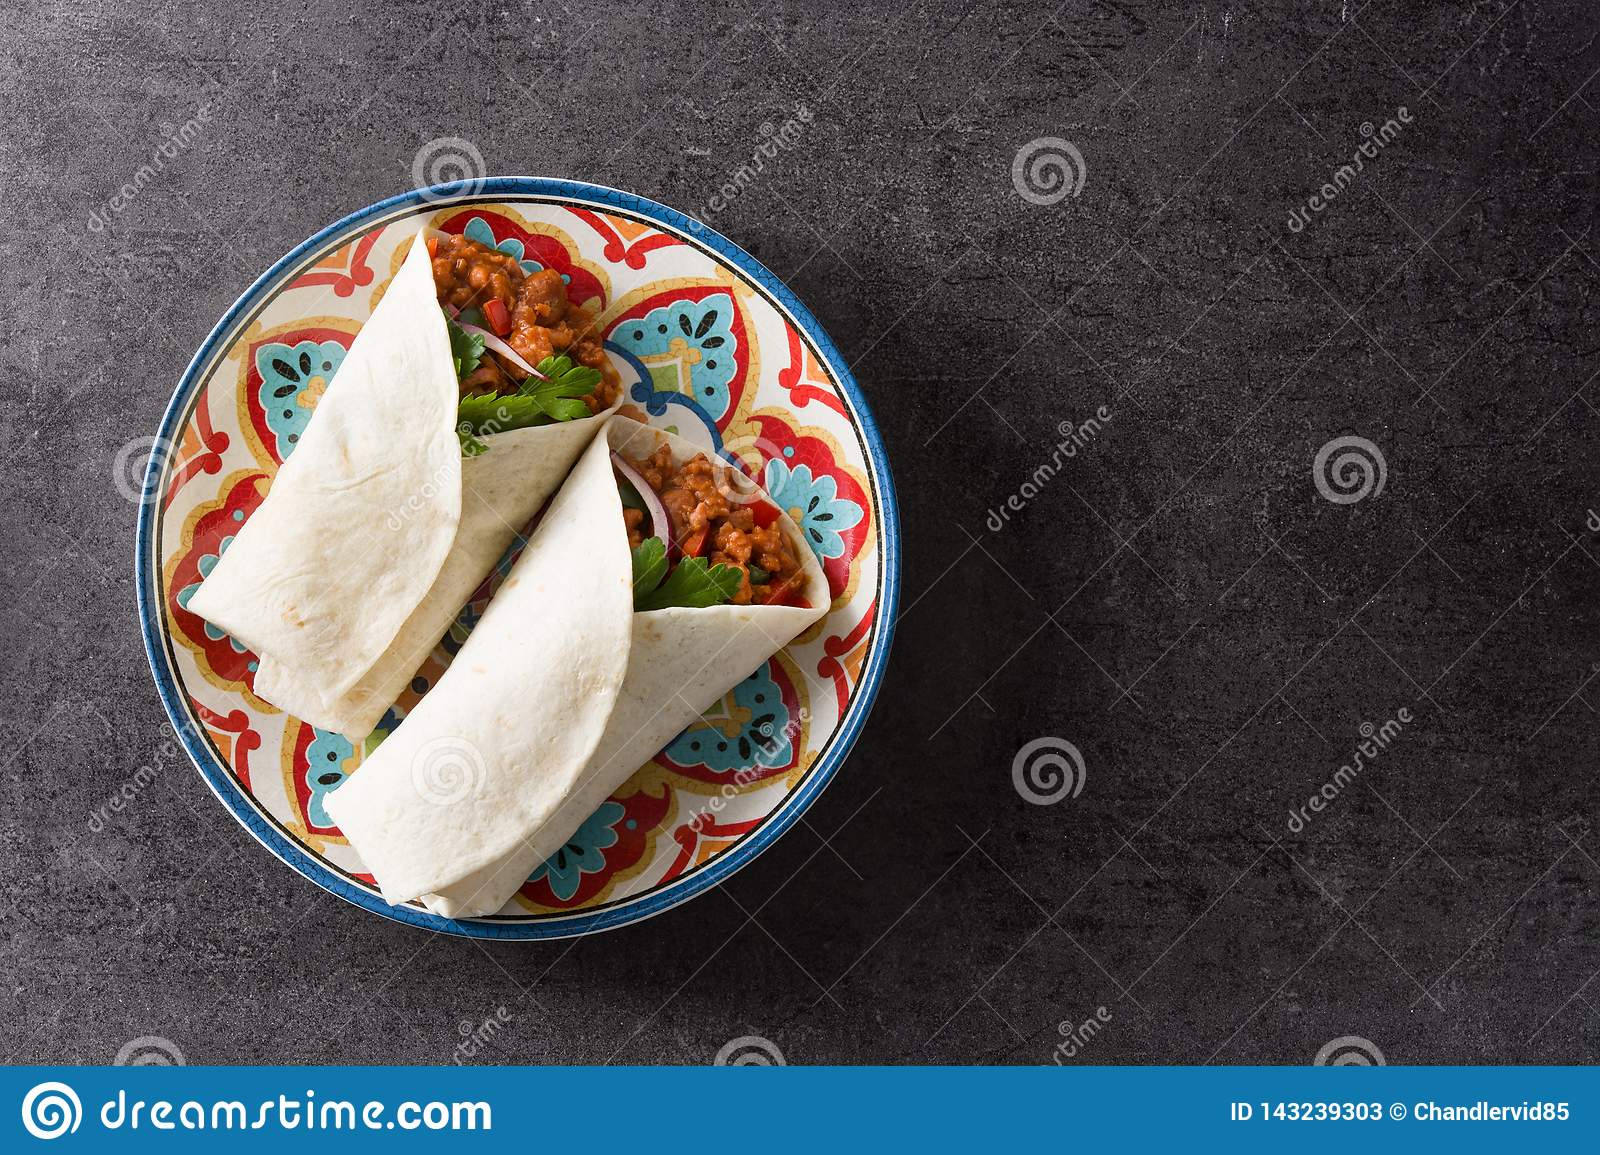 Typical Mexican burrito wrap with beef, frijoles and vegetables on black background.